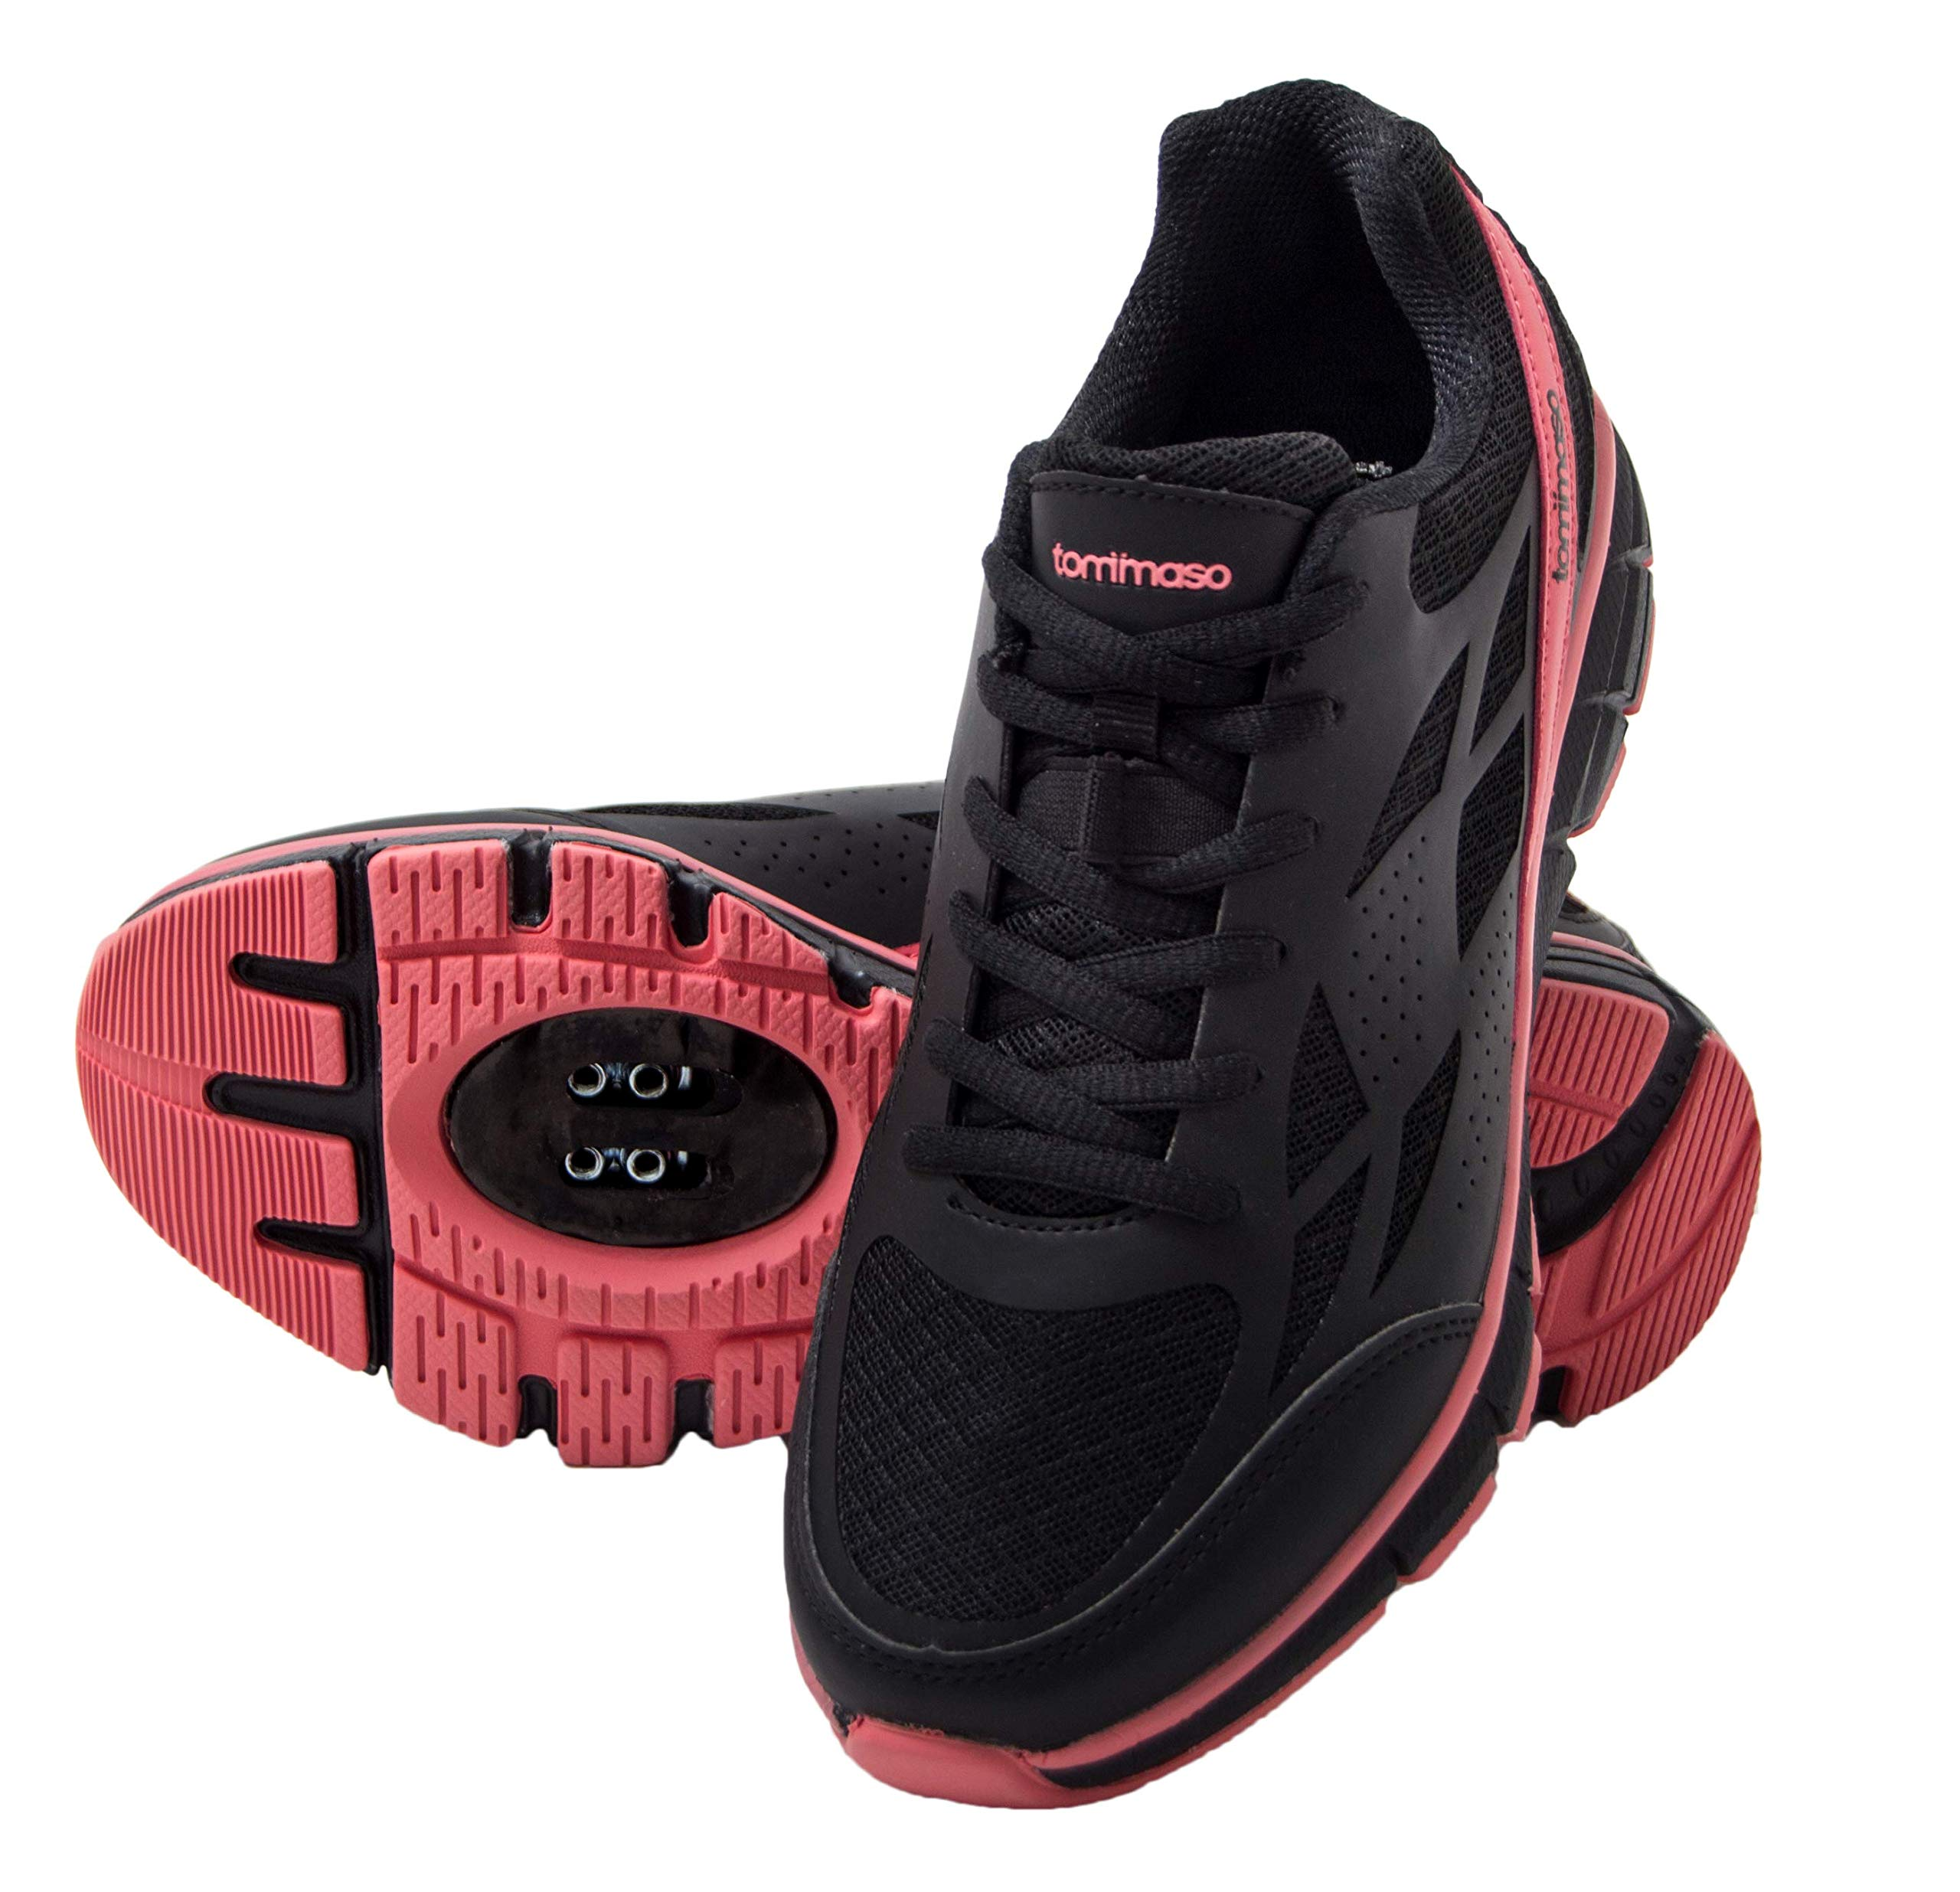 tommaso Venezia Women's Spin Class, Urban Cycling, Road Biking Shoes - 39 Black/Rose by tommaso